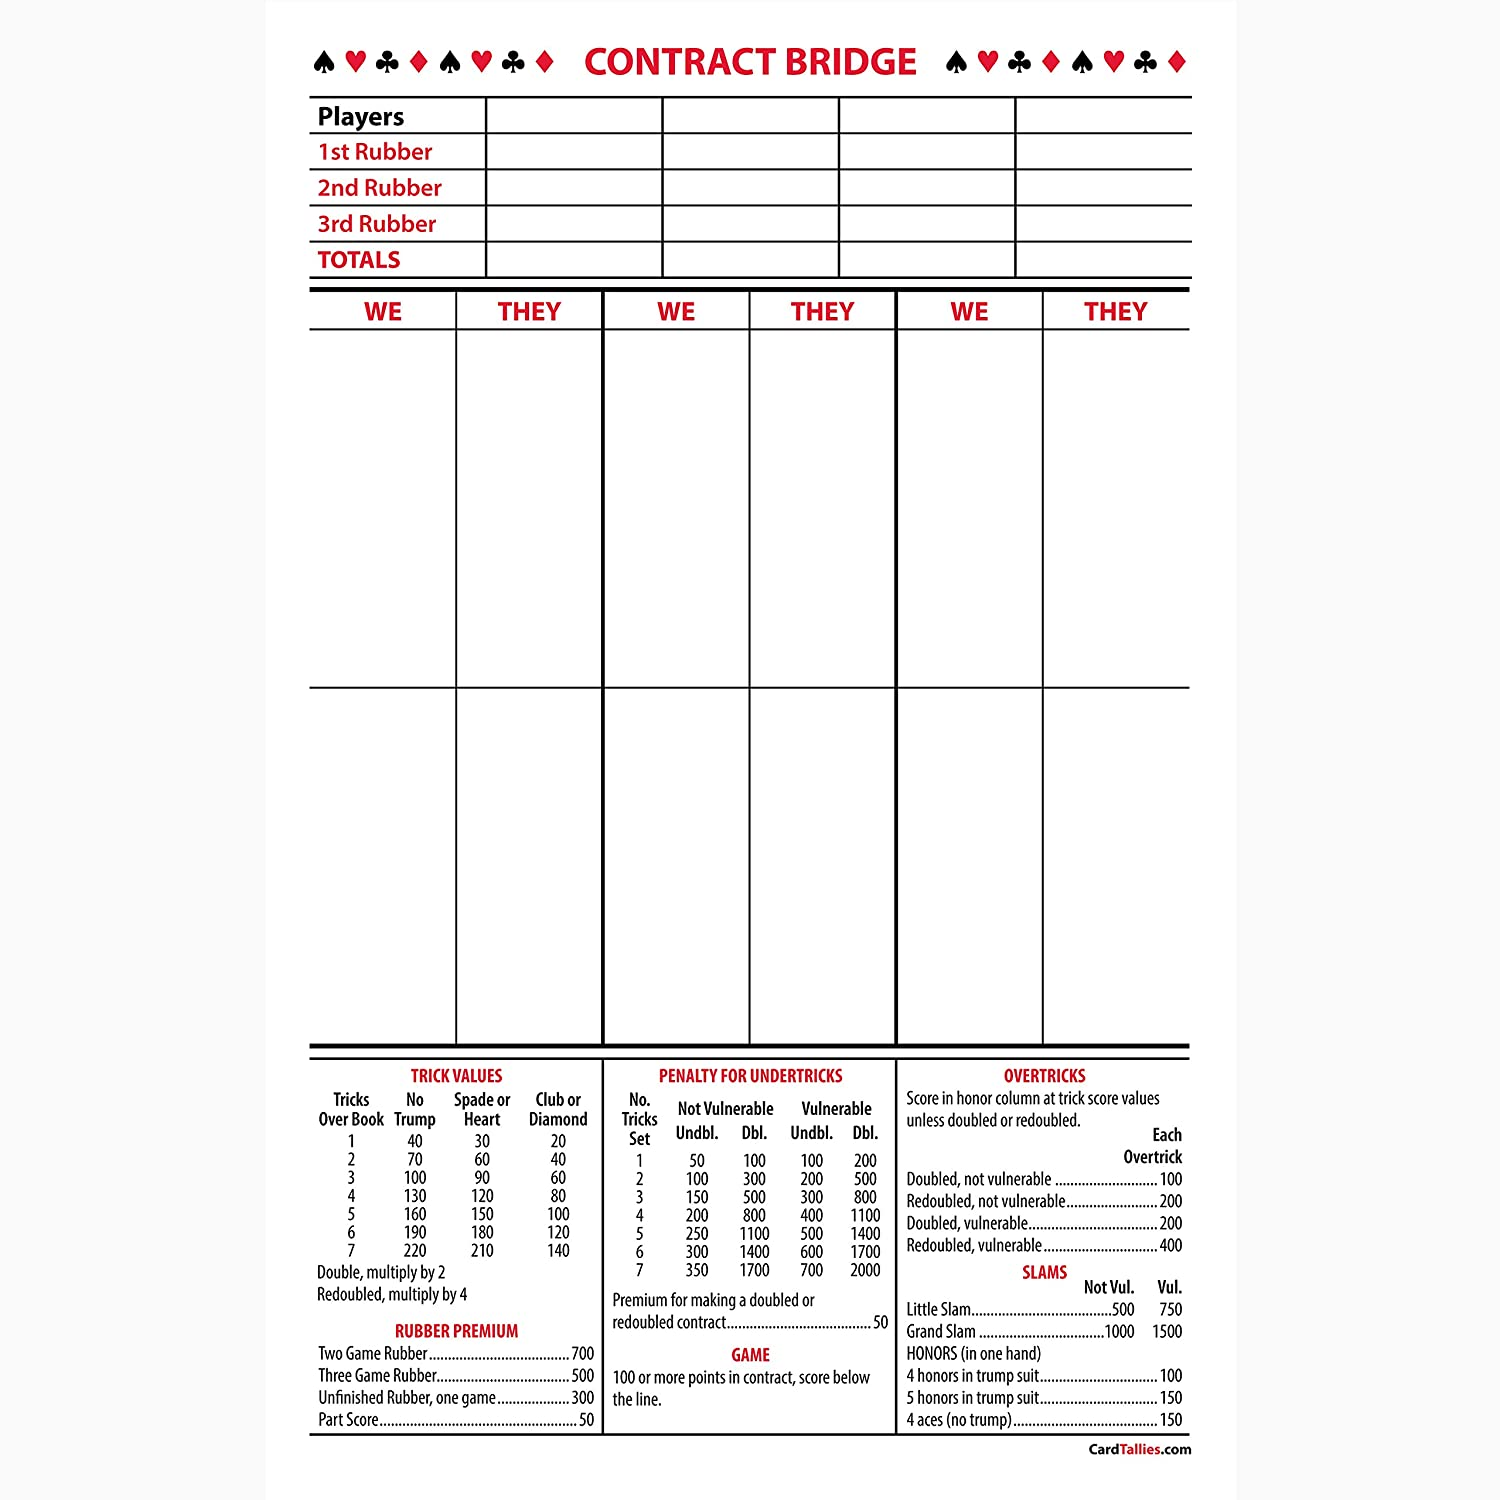 Amazon.com: Contract Bridge Score Pads, 5 Pack, Large Size: